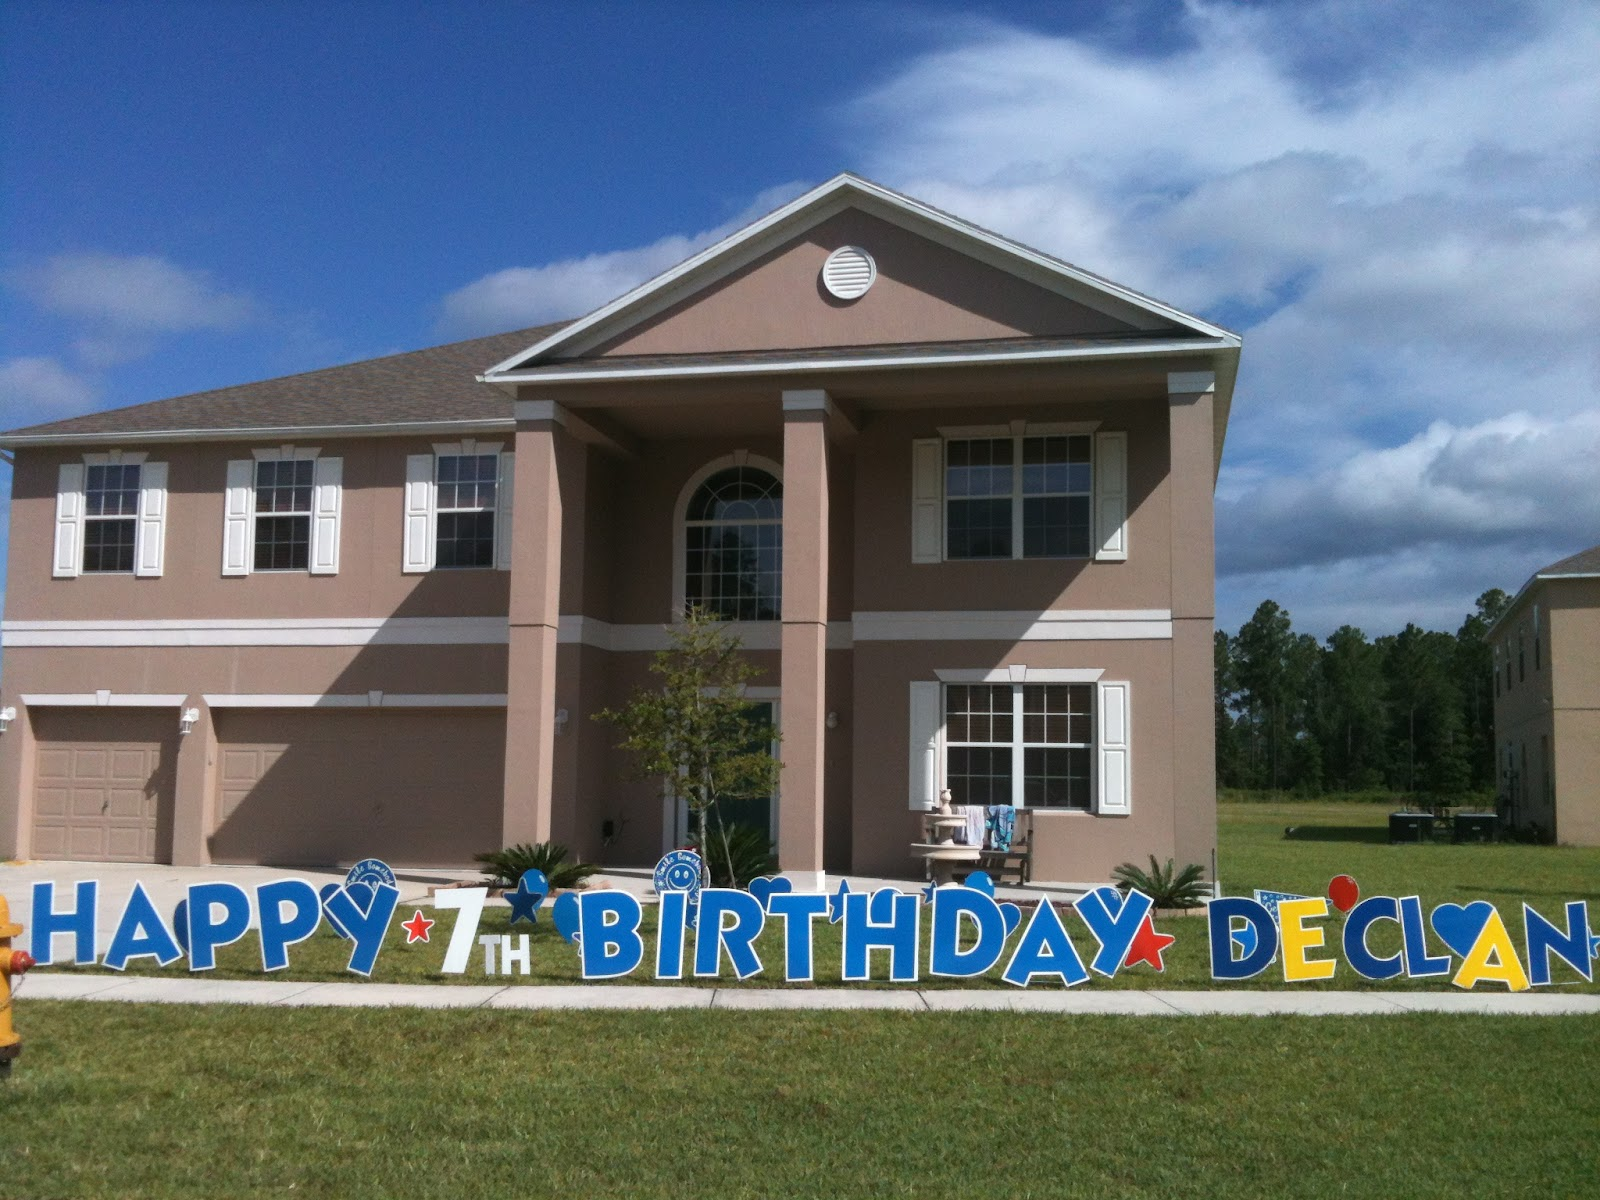 Big Yard Card Can Surprise Your Little Boy For A Birthday Our Blue HAPPY BIRTHDAY Letters Are The Perfect Addition To Make Look Great